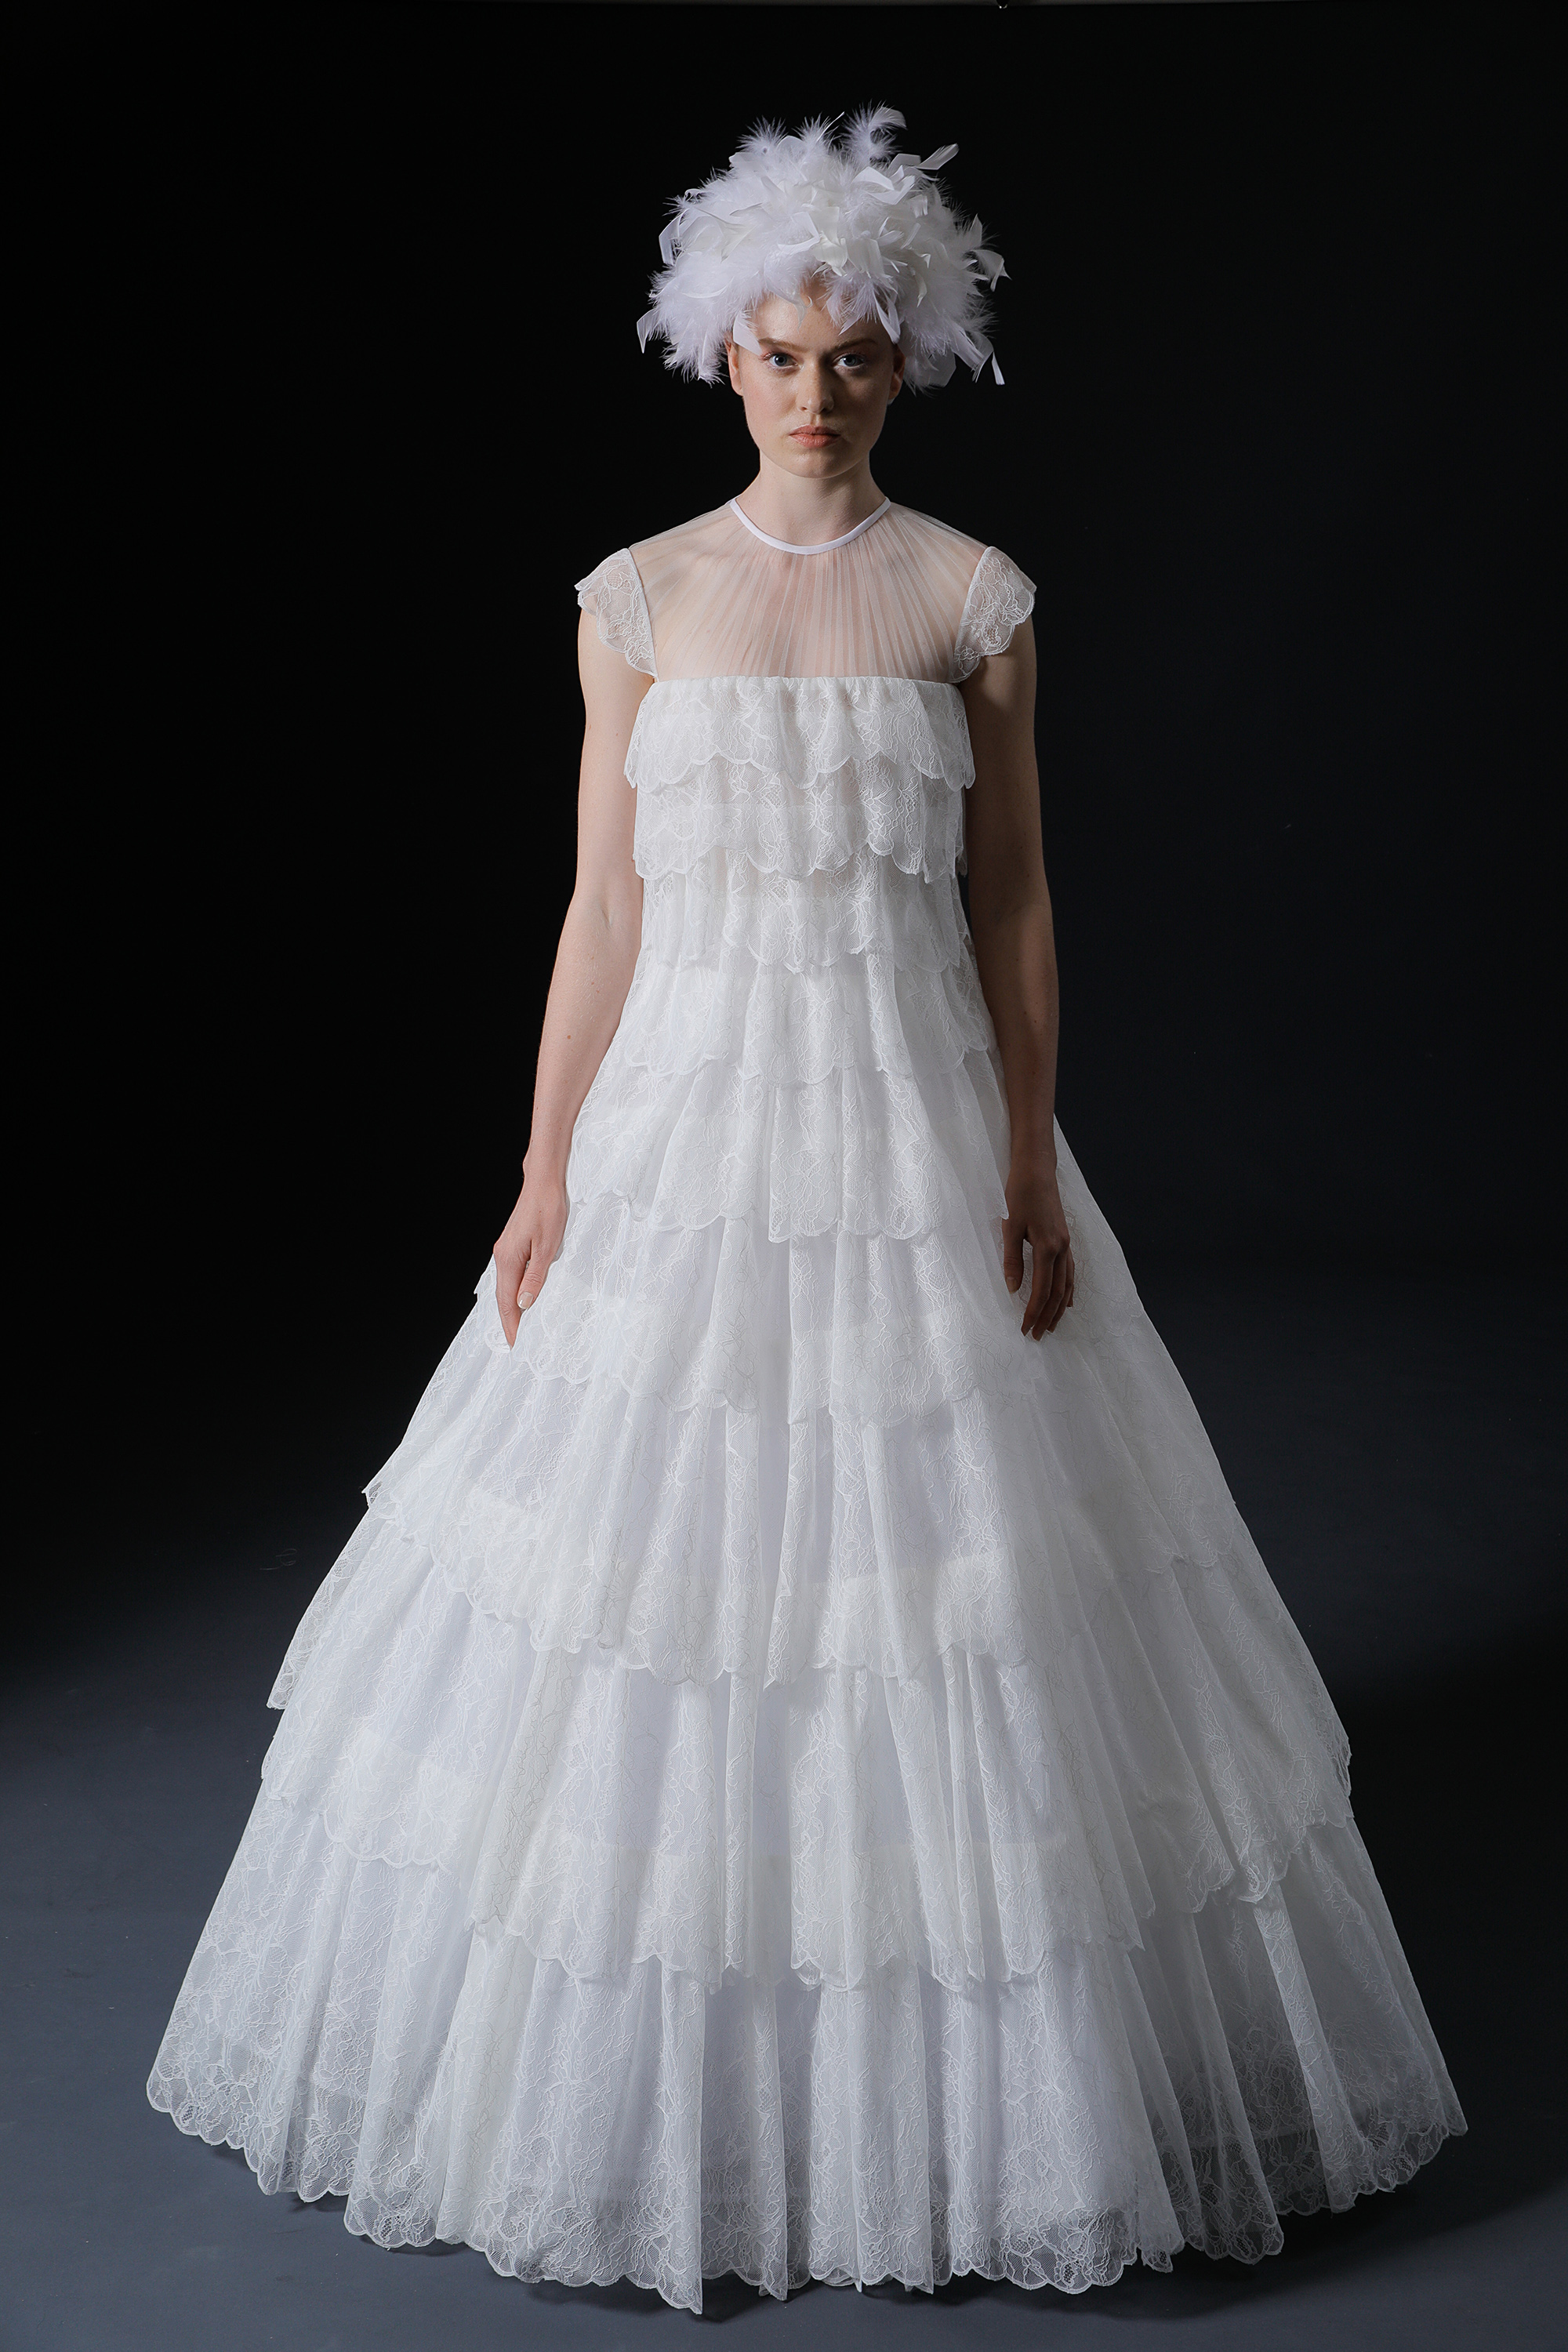 Illusion jewel neck cap sleeve tiered lace a-line wedding dress Isabelle Armstrong Spring 2020